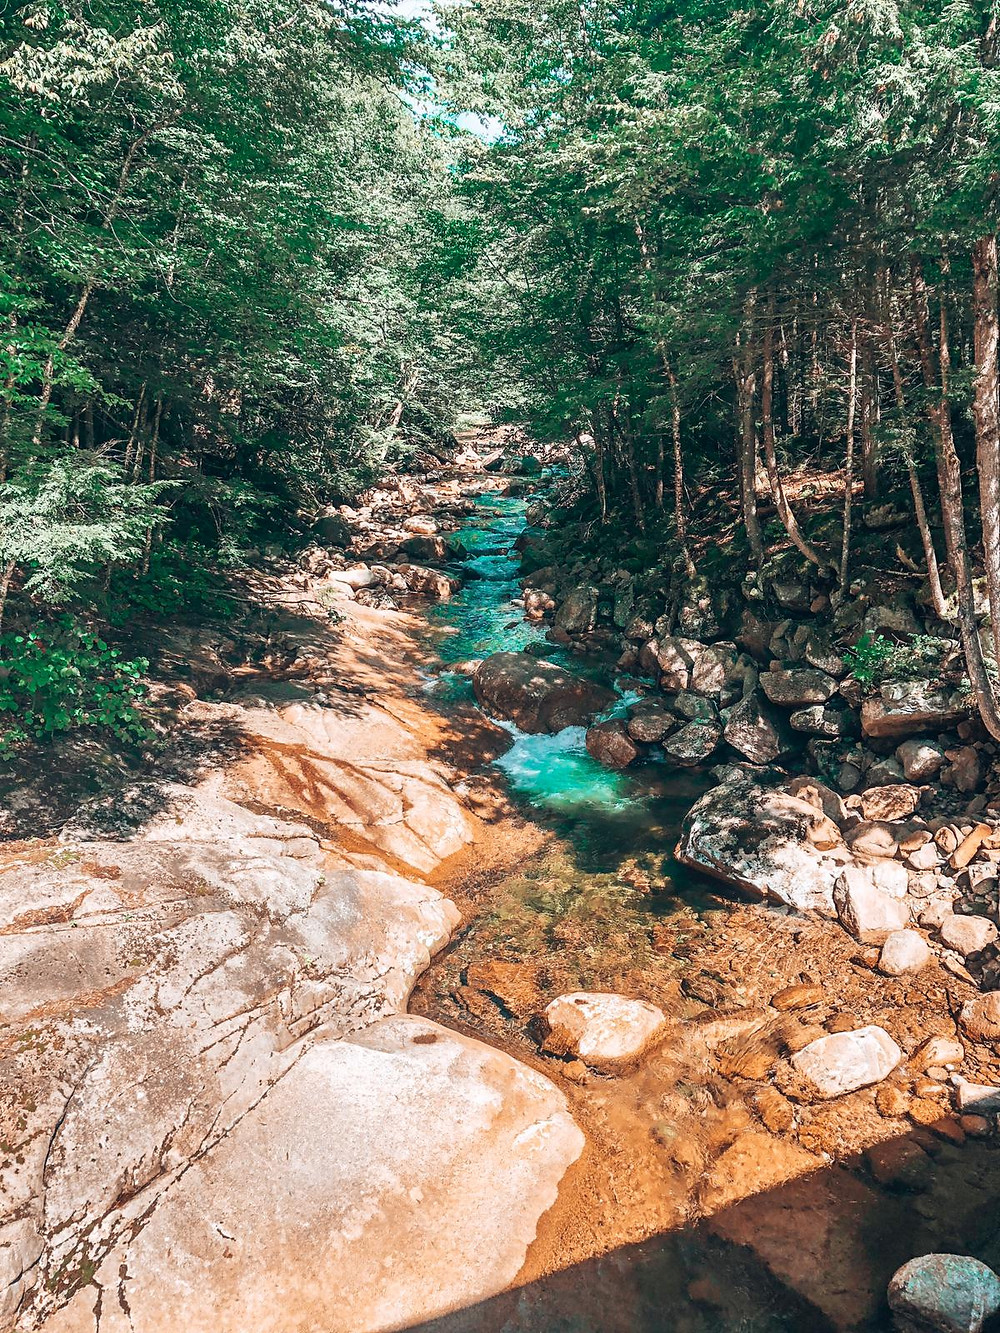 A forest stream in the White Mountains